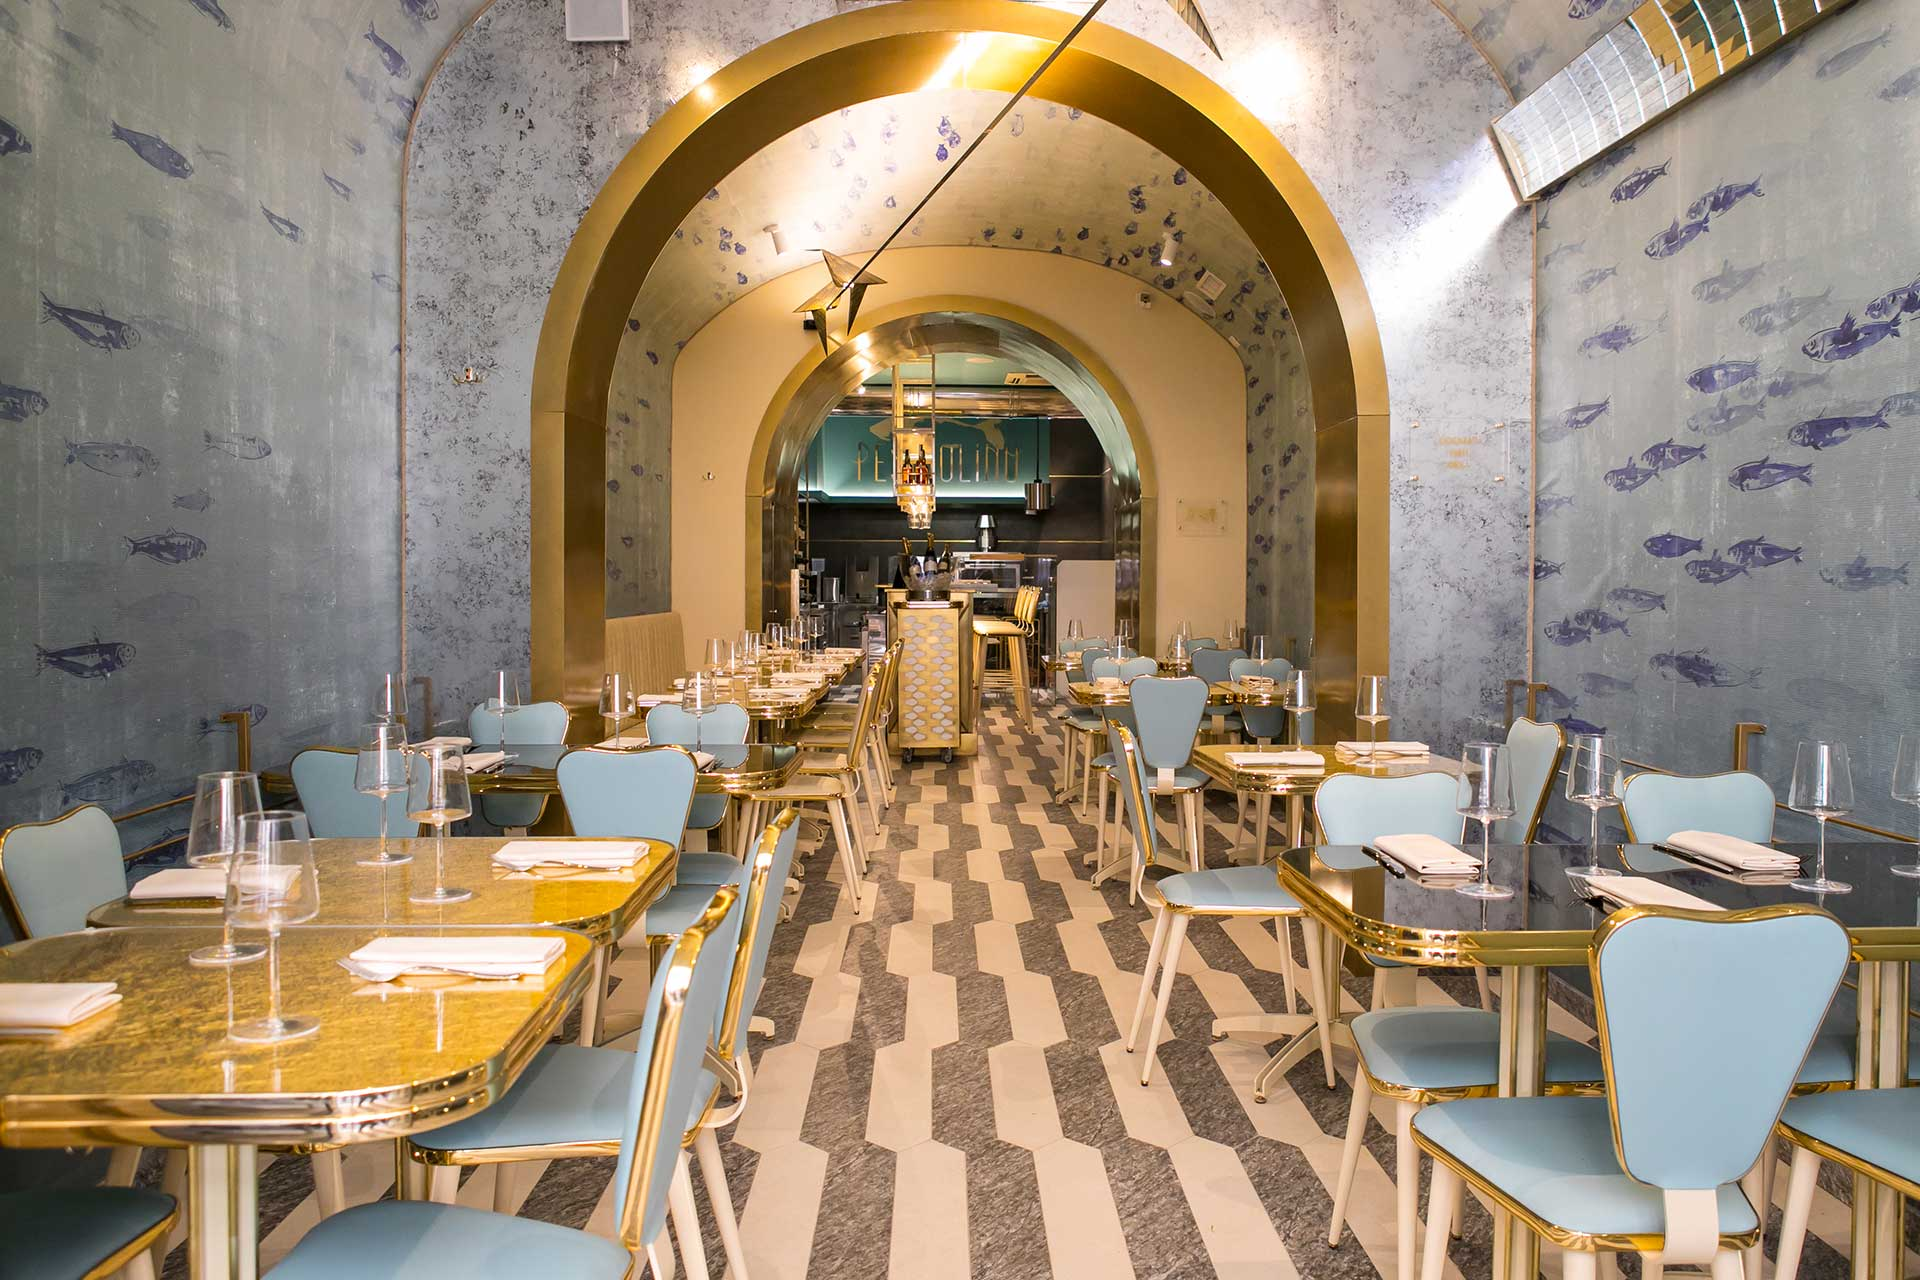 Pesciolino Fish Bar & Restaurant in Rome